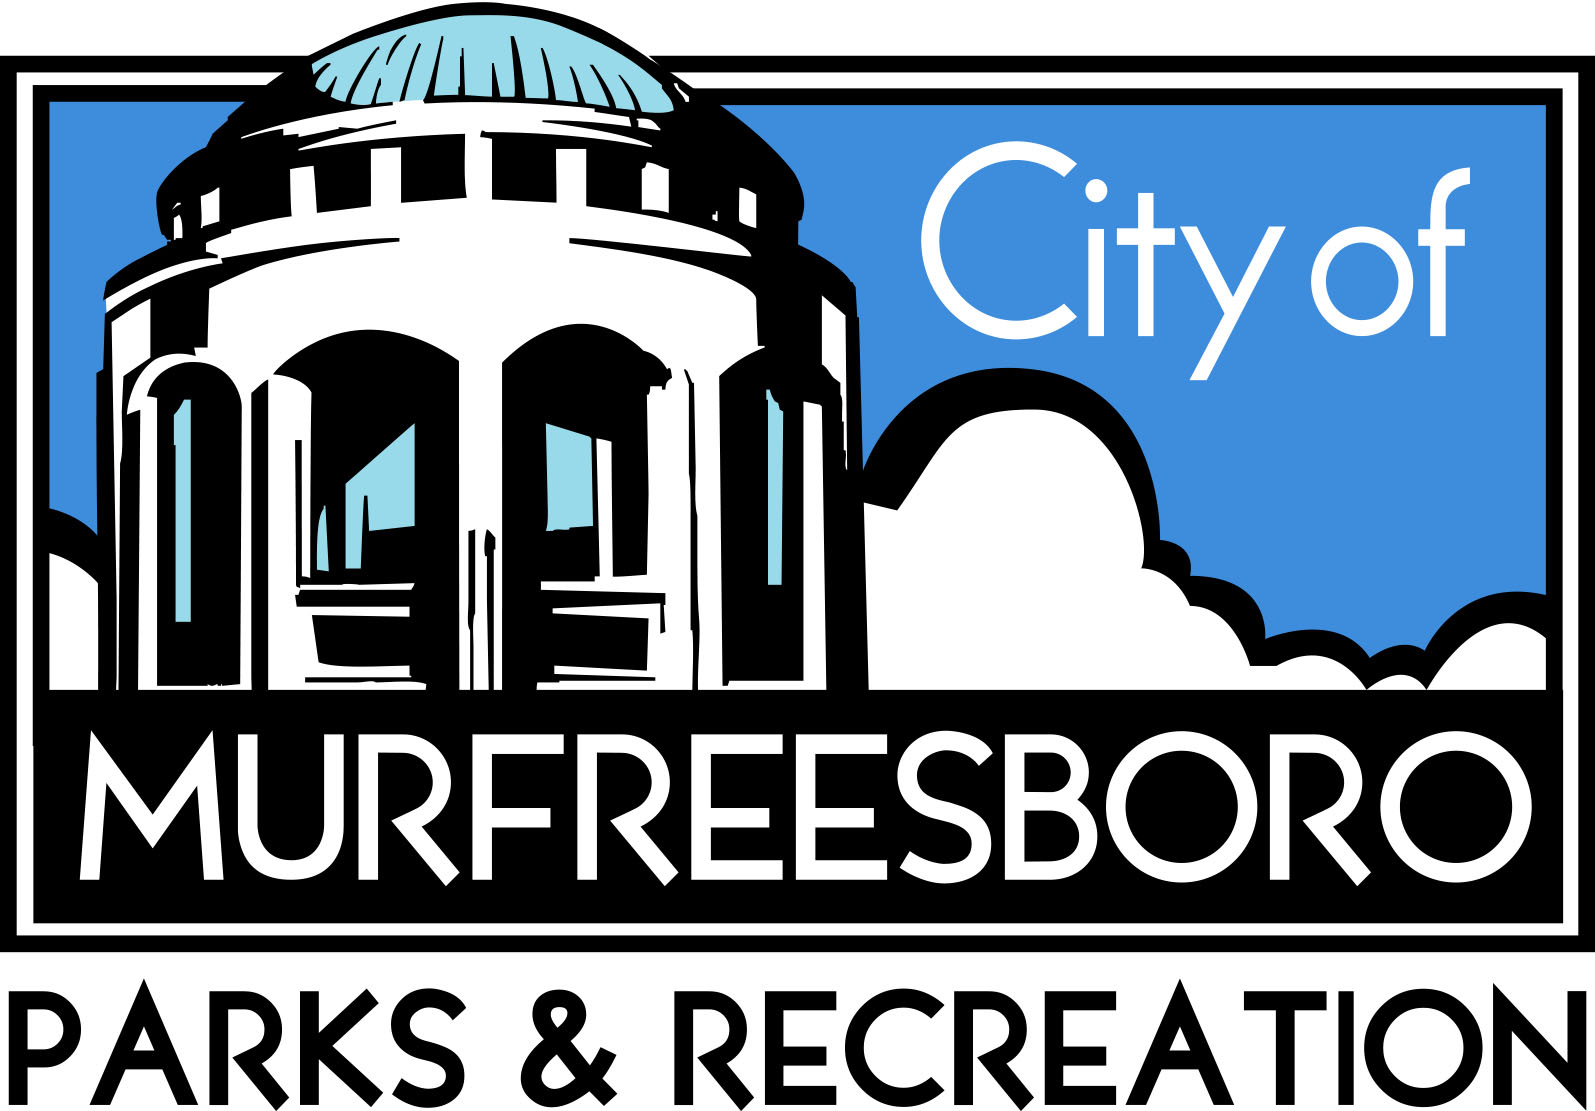 Parks and Recreation to hold Master Plan Open House Nov. 19